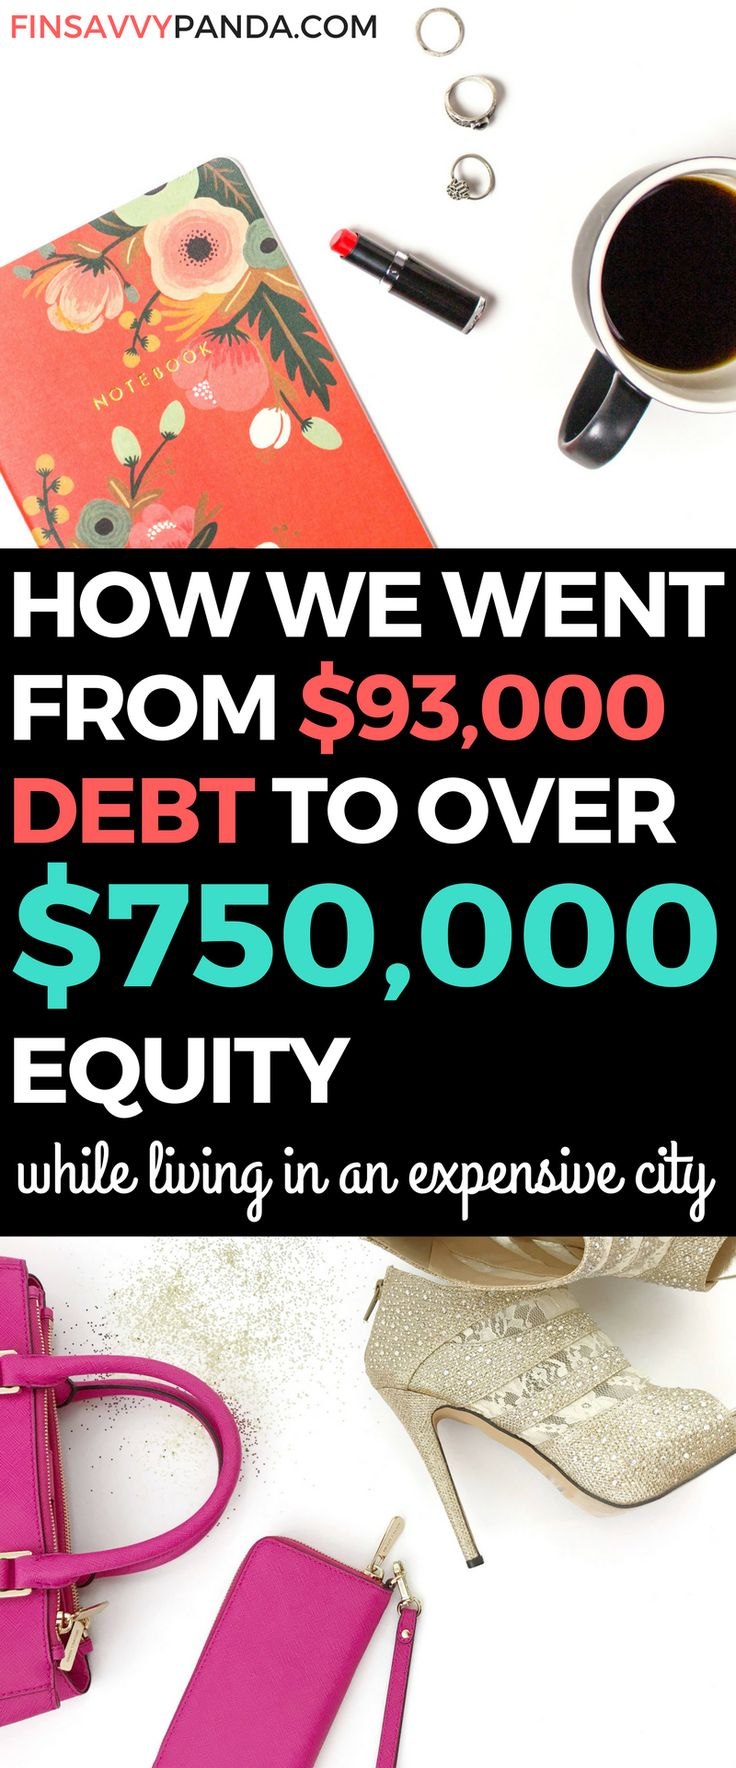 Are you struggling to get out of debt? To save money? To start investing? Your long-term goal is to start building equity, right? I know exactly how you feel! We started from $93,000 debt to having over $750,000 in equity today. Come and learn our tips and tricks on how we did it. To be honest, we're just regular people like you and we didn't expect these results via finsavvypanda.com! saving money tips | increasing income tips | personal finance tips | investing for beginners